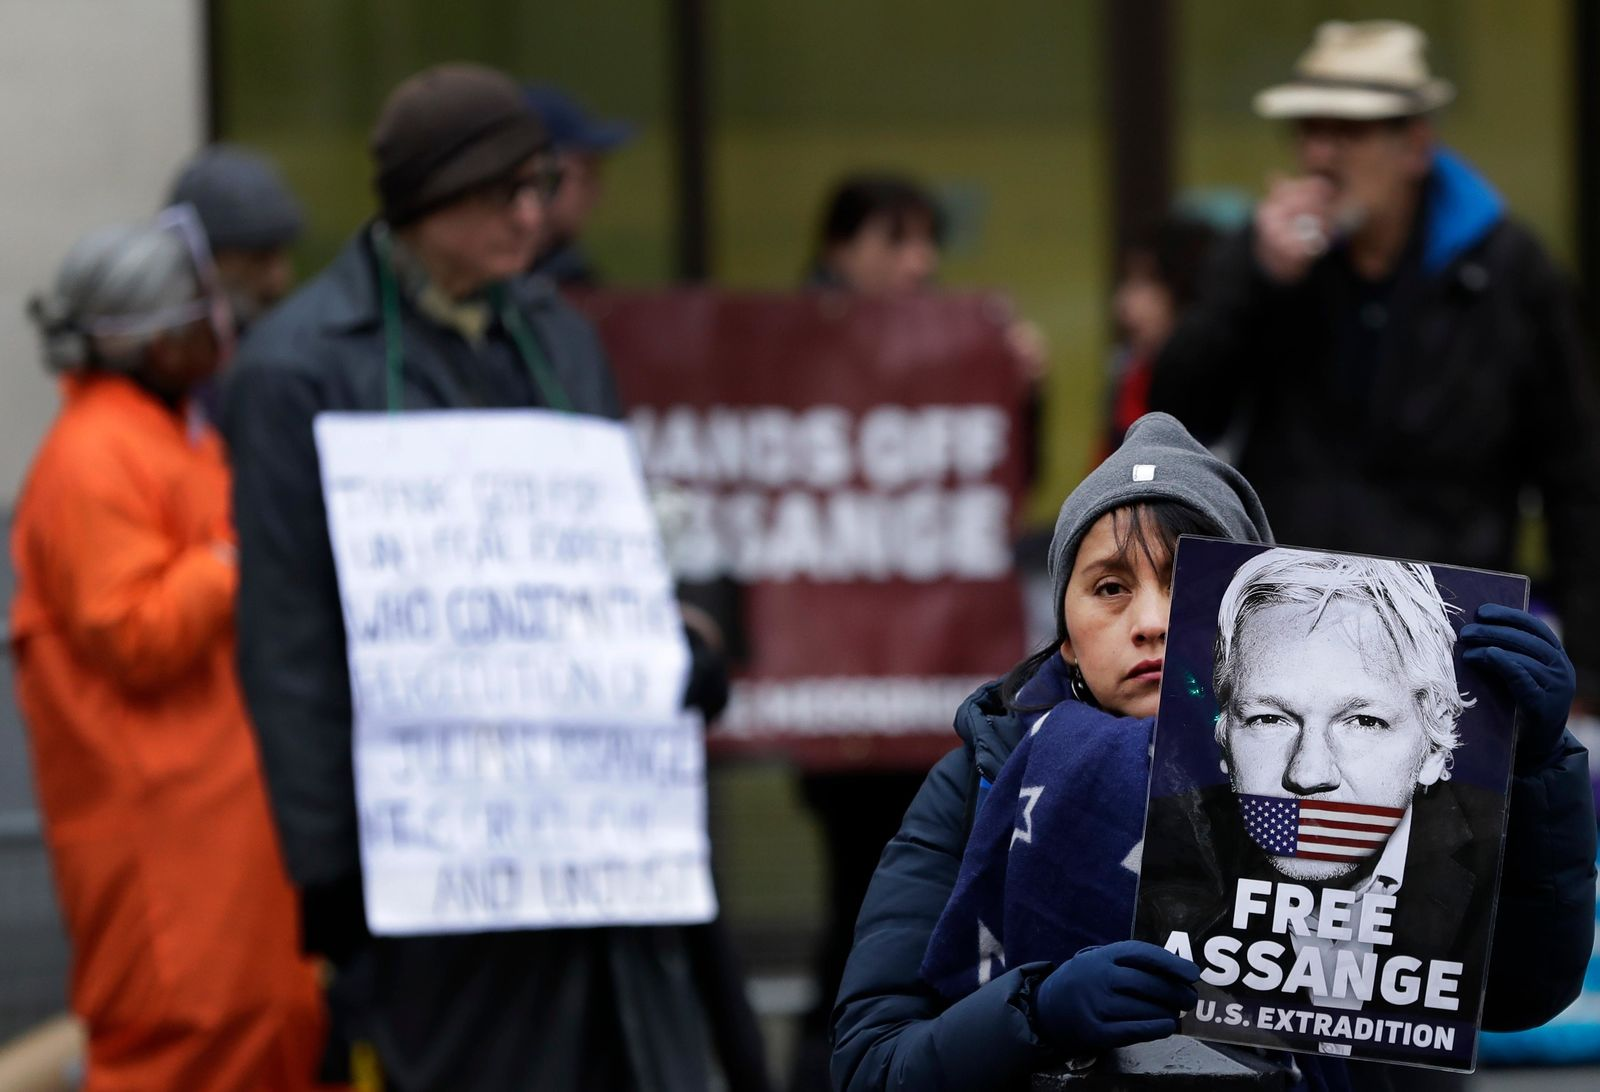 Demonstrators supporting Julian Assange hold banners outside Westminster Magistrates Court in London, Thursday, Jan. 23, 2020.{ } (AP Photo/Kirsty Wigglesworth)